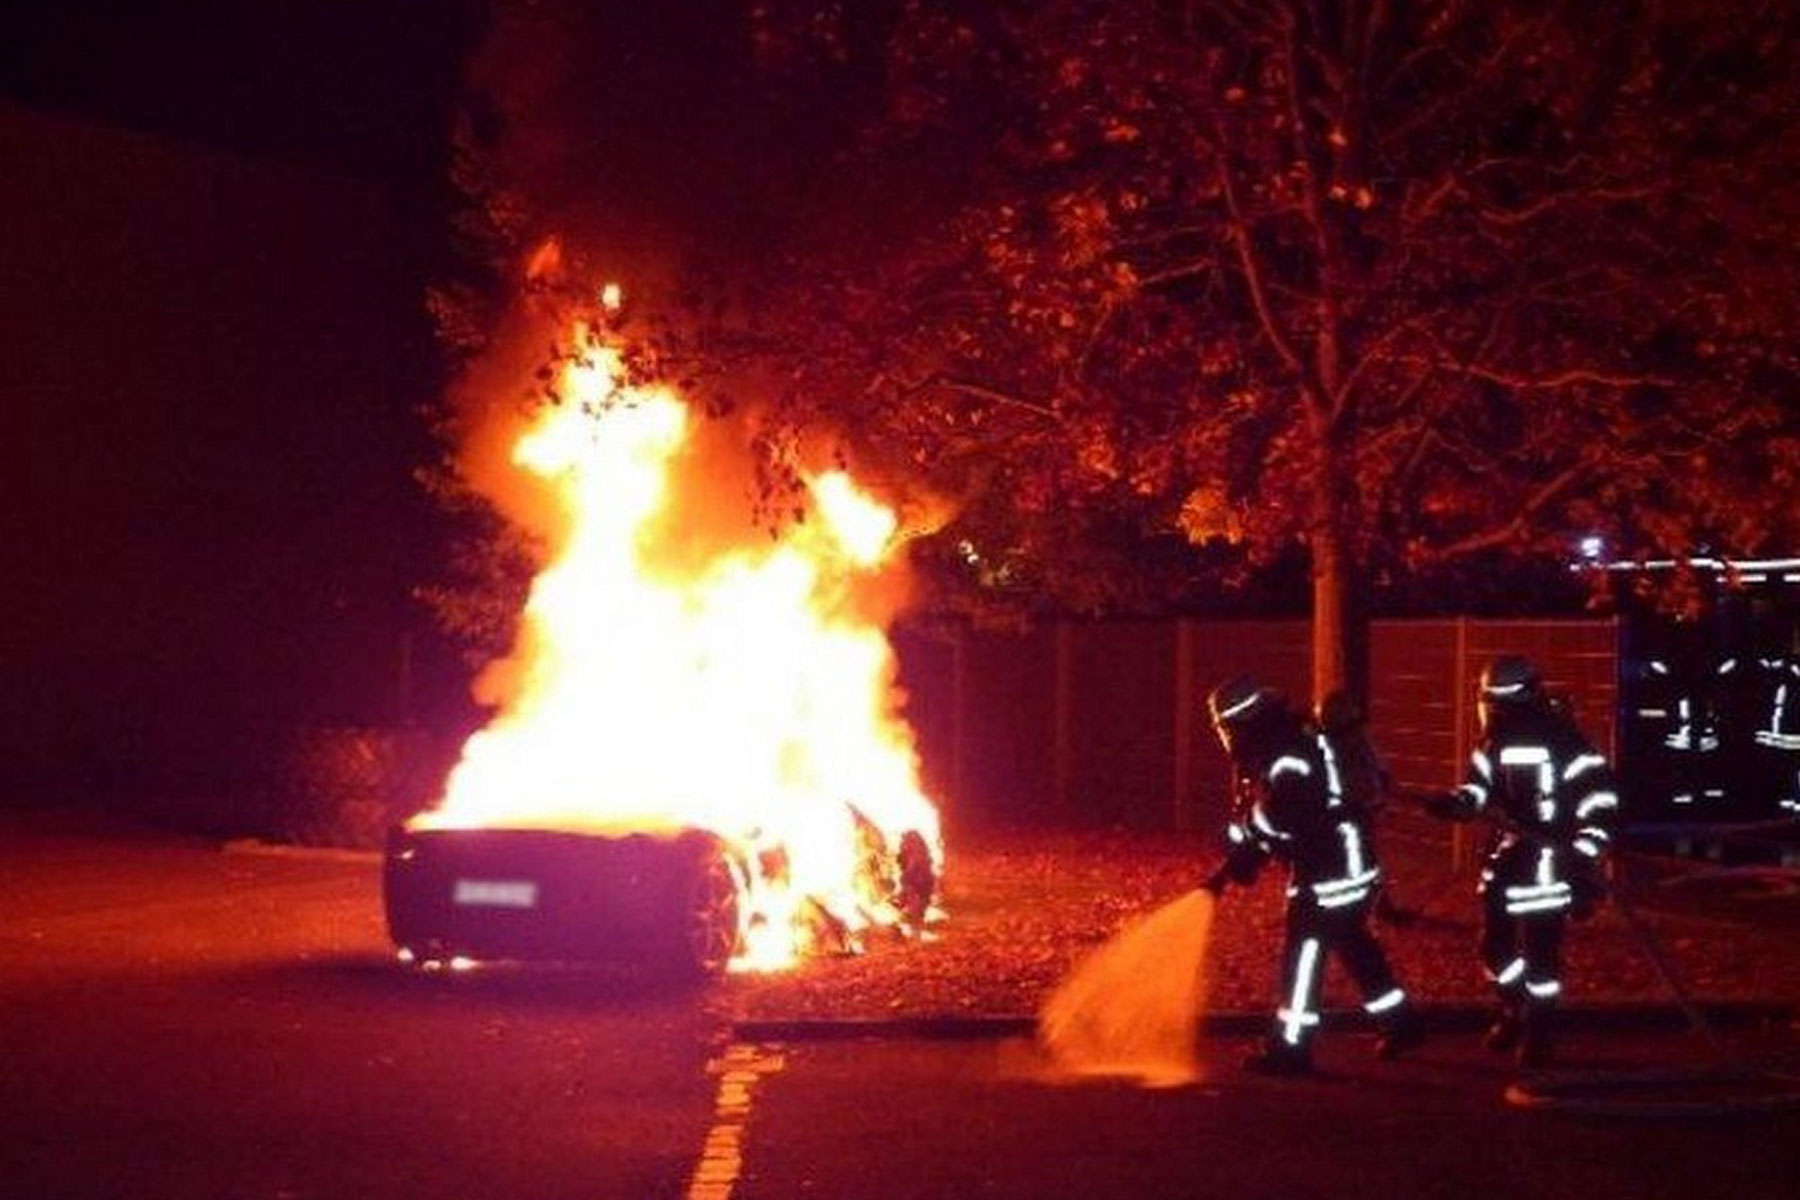 Teenager sets fire to Ferrari 458 –because he wanted a Speciale A